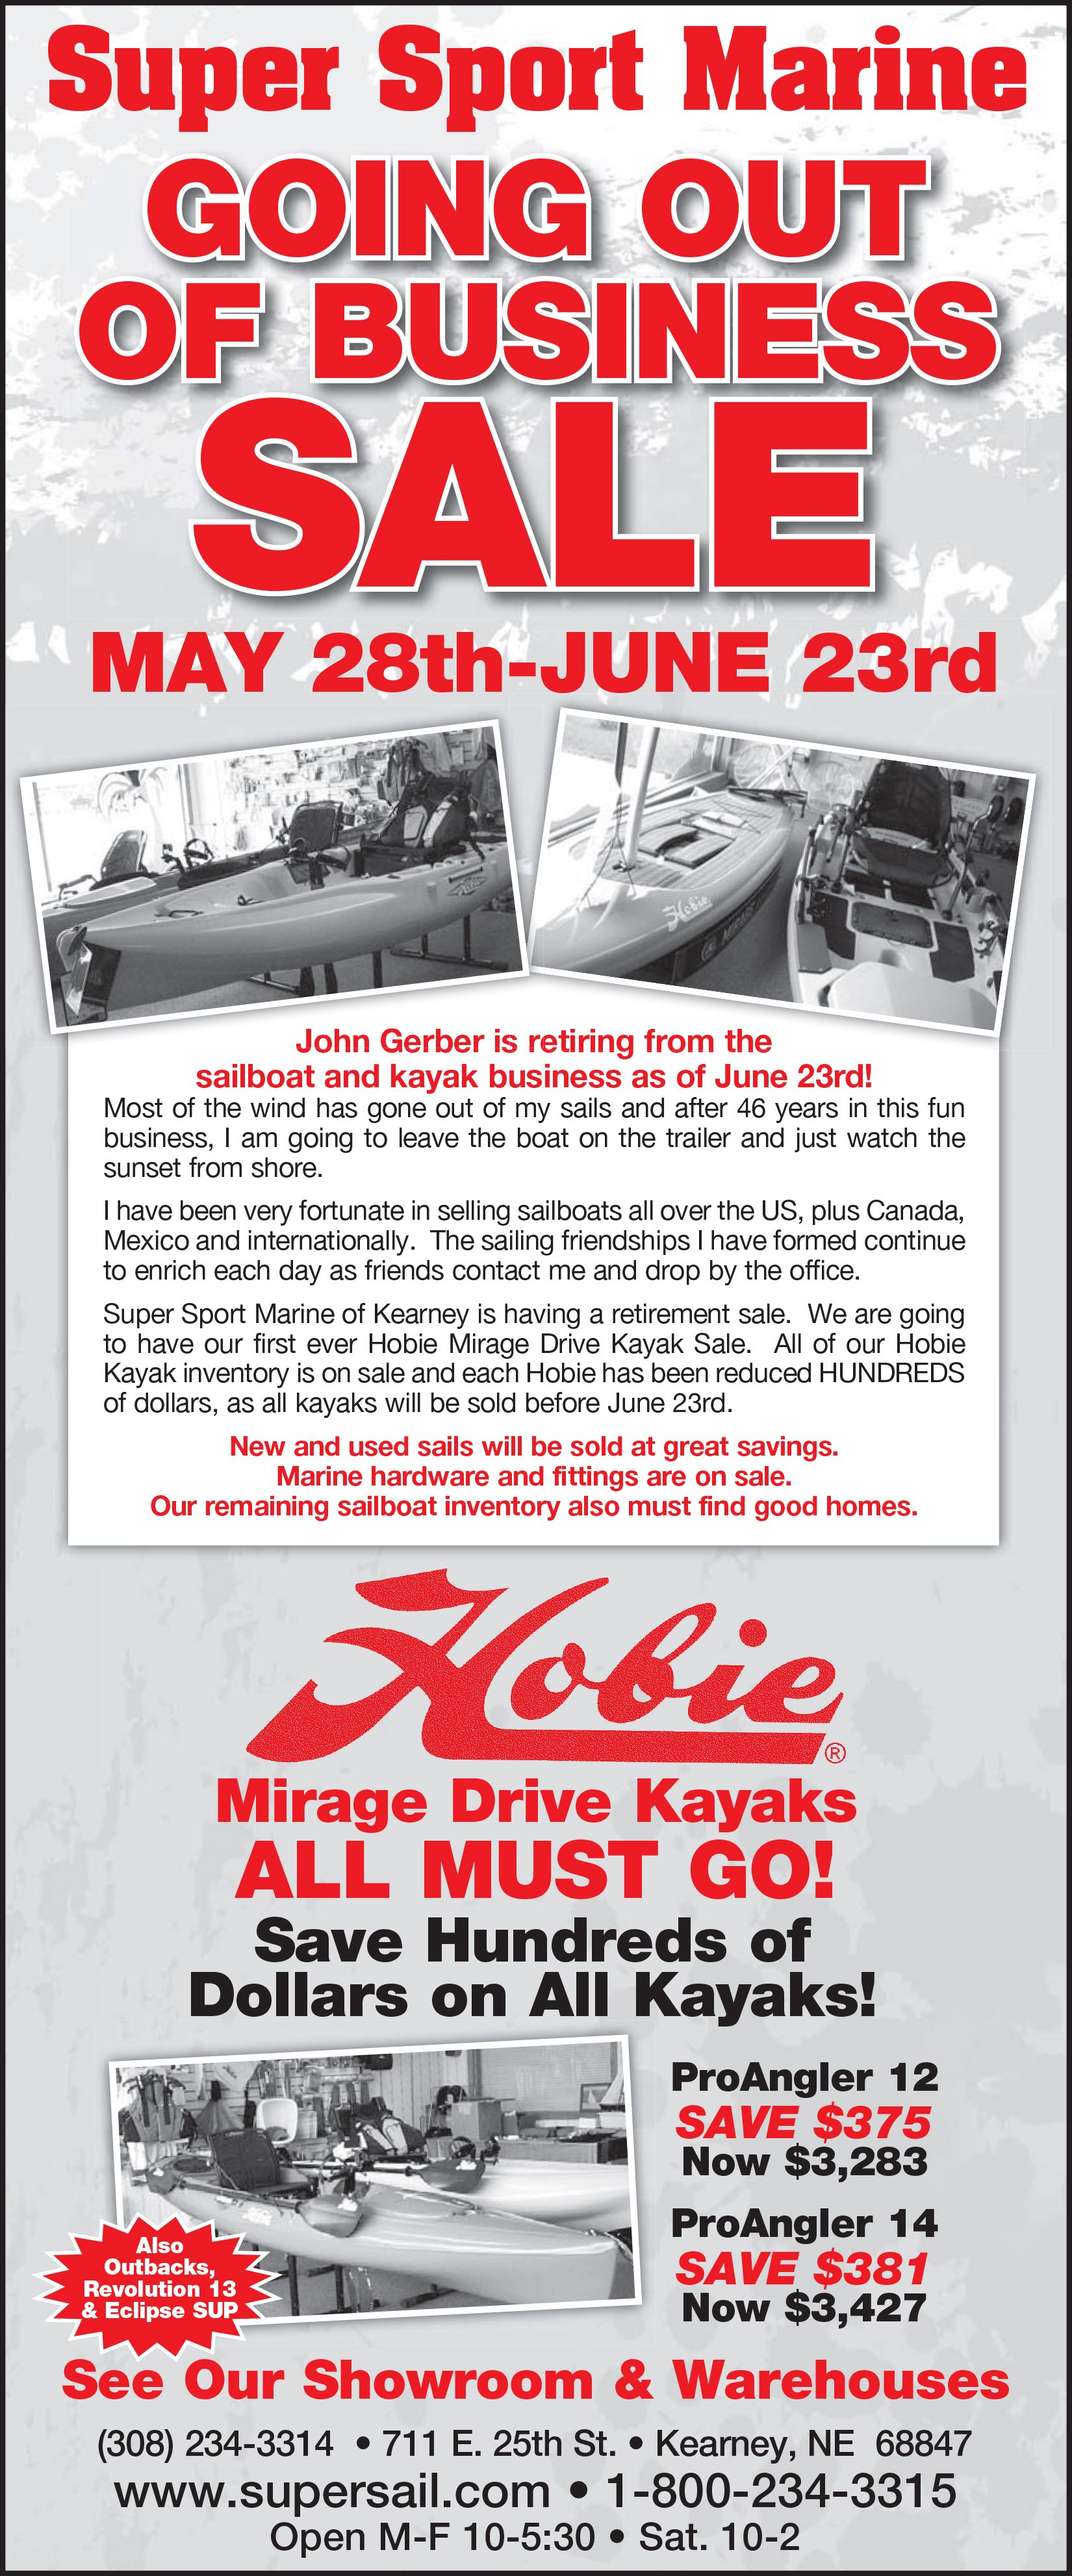 Super Sport Marine Going Out Of Business SALE. May 28th - June 23rd.  John Gerber is retiring from the sailboat and kayak business as of June 23rd! Hobie, Mirage Drive Kayaks. ALL MUST GO! Save Hundreds of Dollars on All Kayaks!